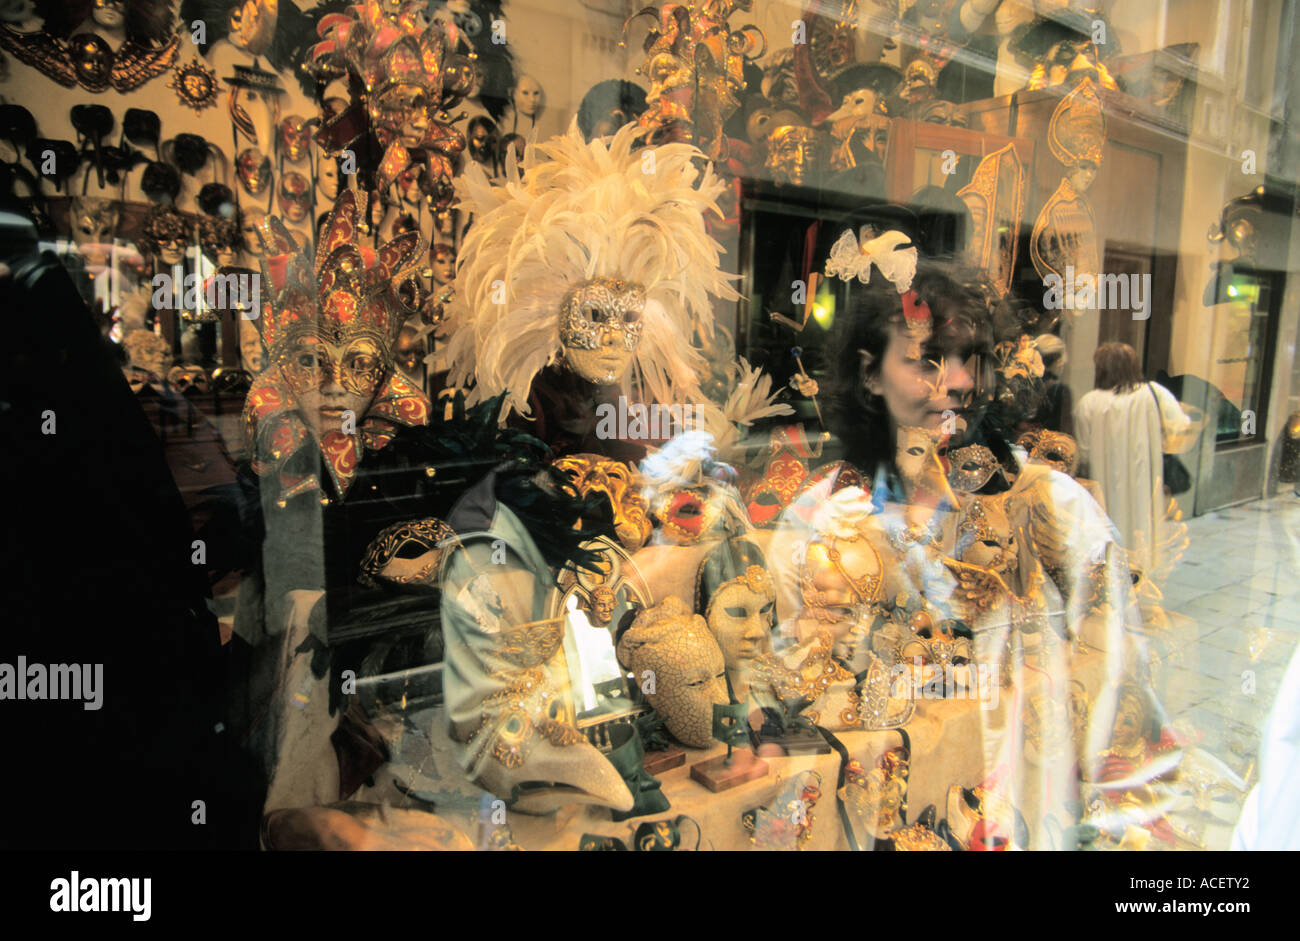 Reflections in window mask shop in Venice Italy - Stock Image